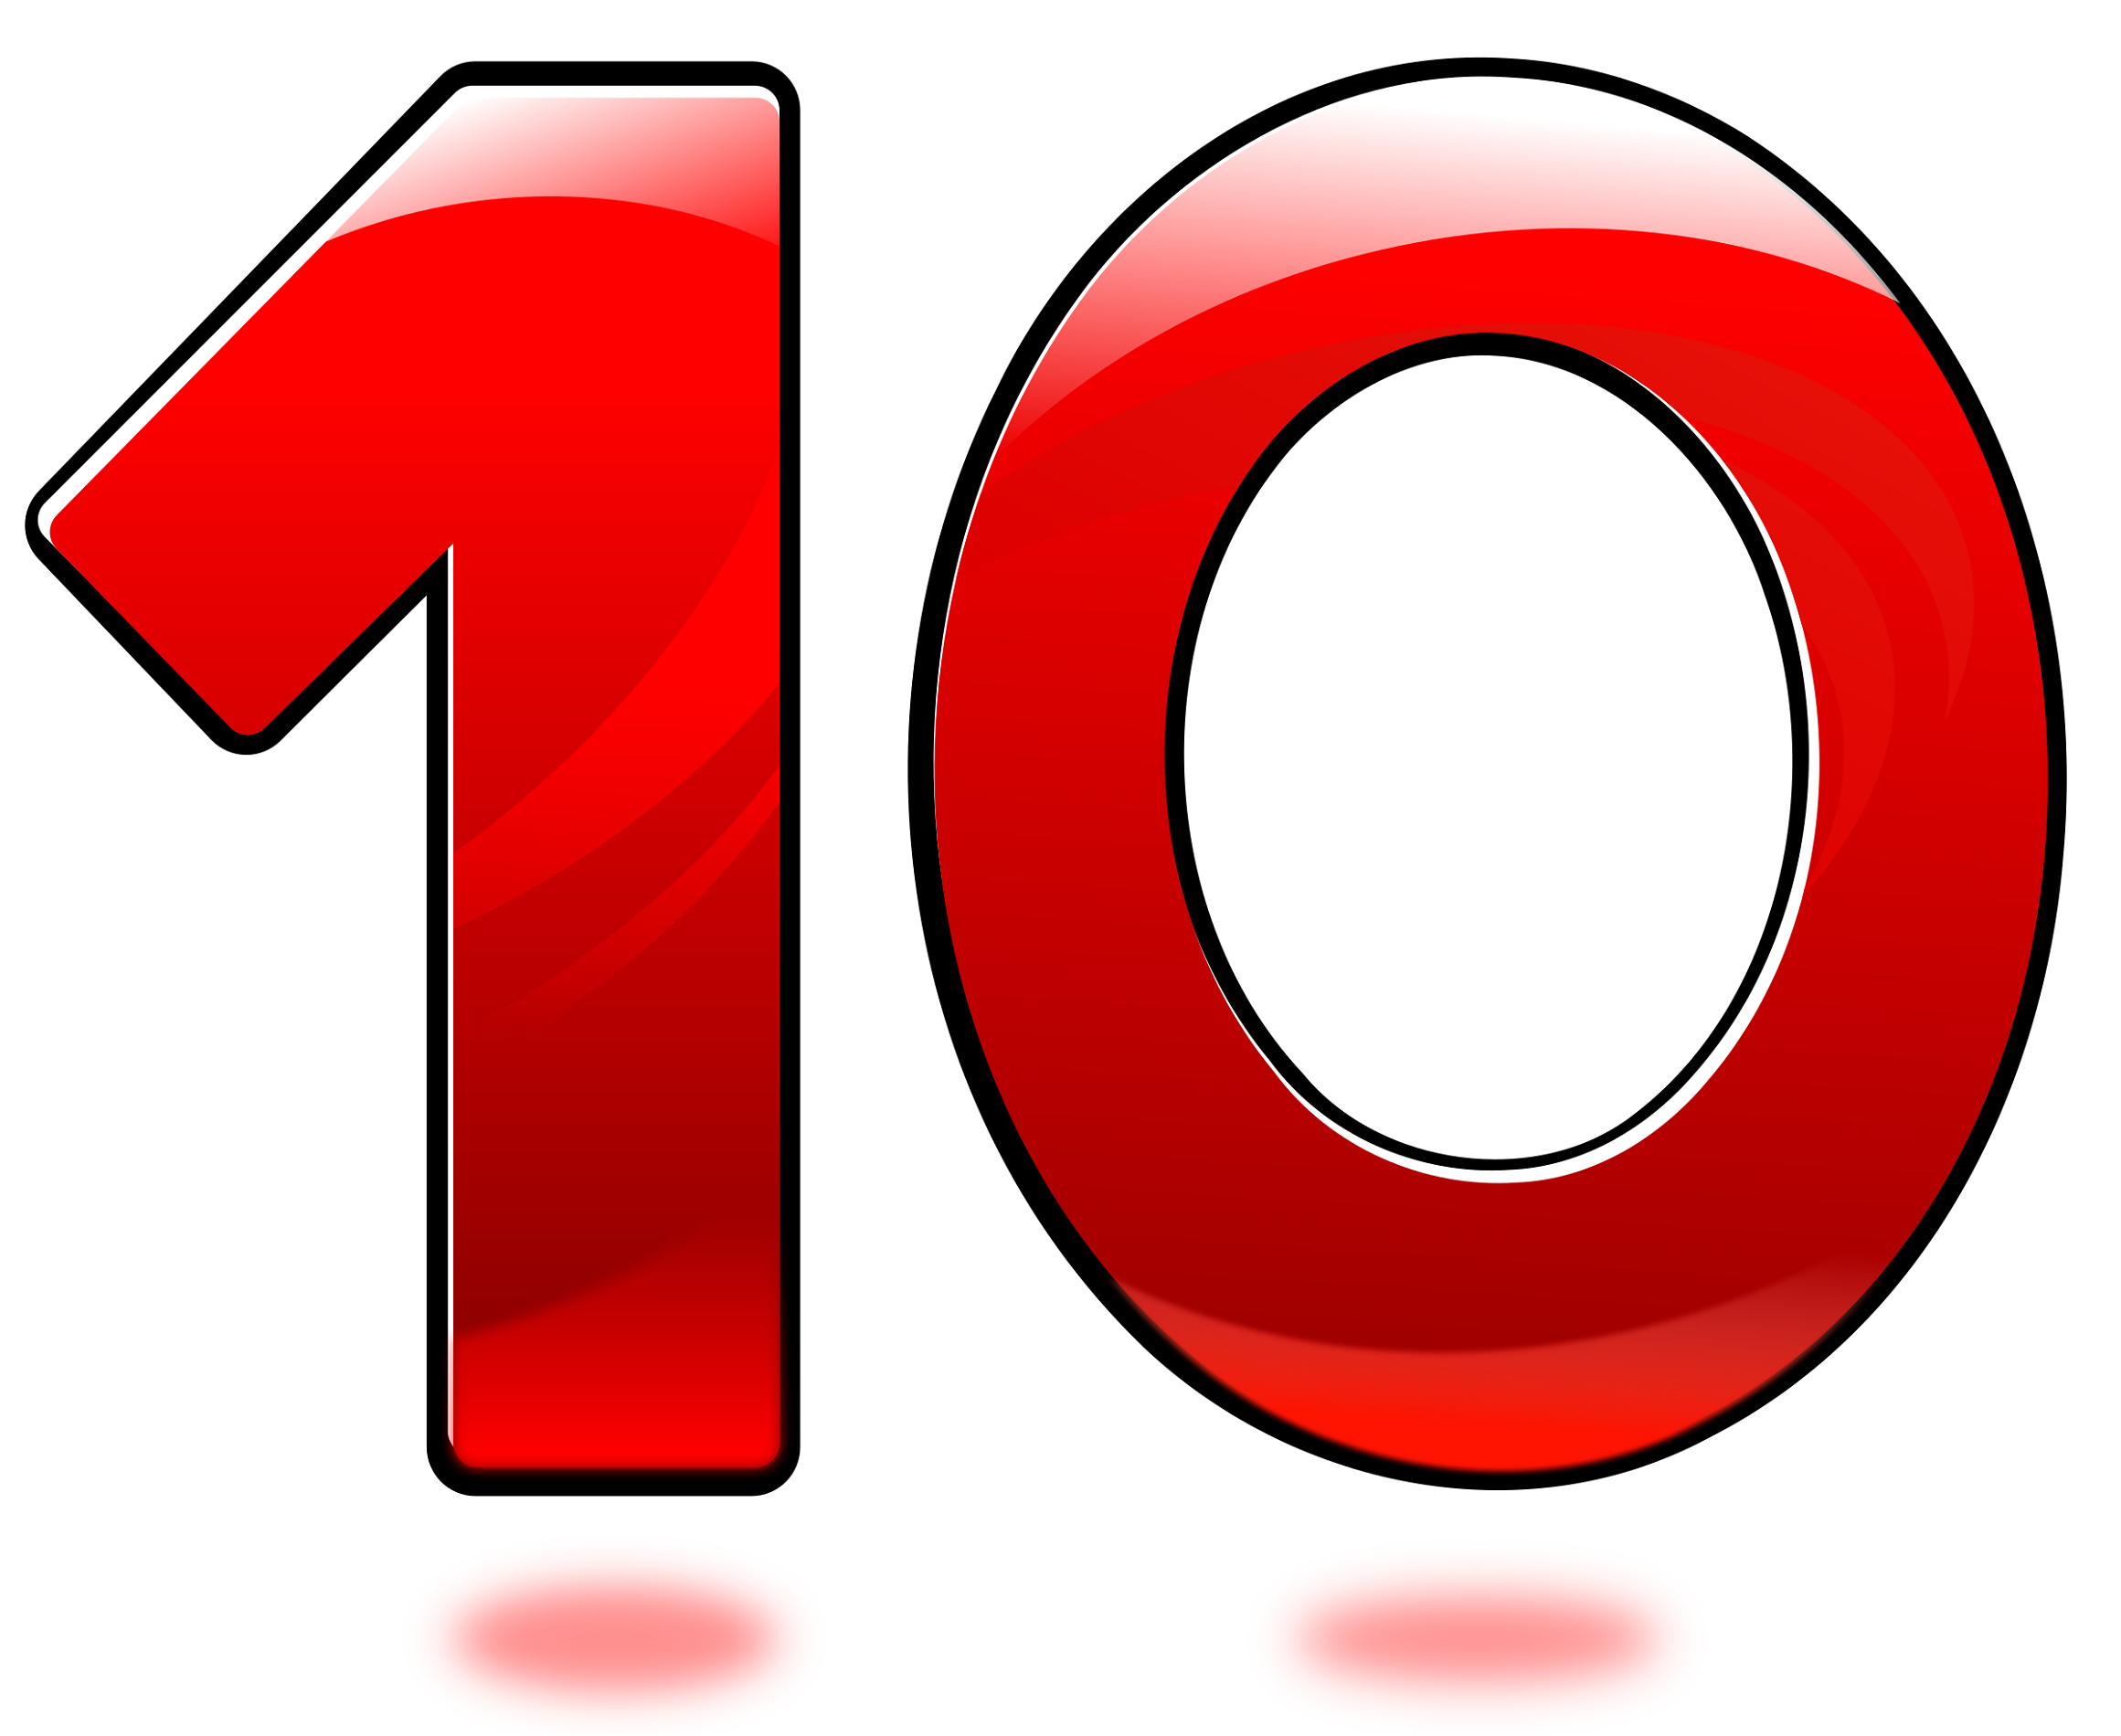 picture of the number 10 red